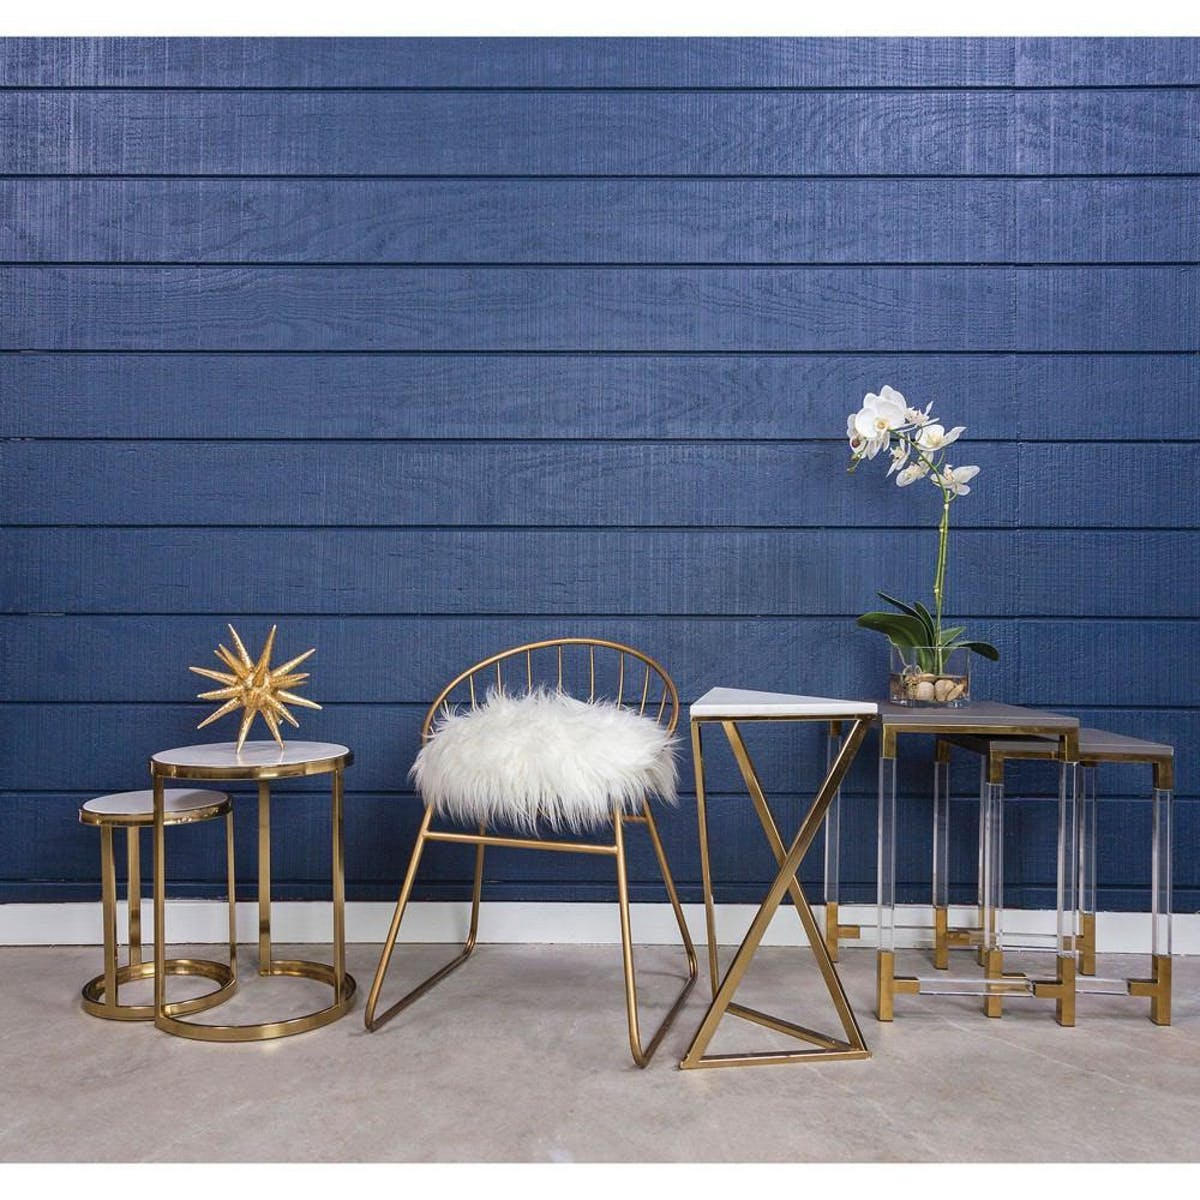 sterling industries trimalchio gold plated accent table set pool umbrellas bunnings laptop side nesting tables living room blue lamp round decor quilted toppers narrow kitchen